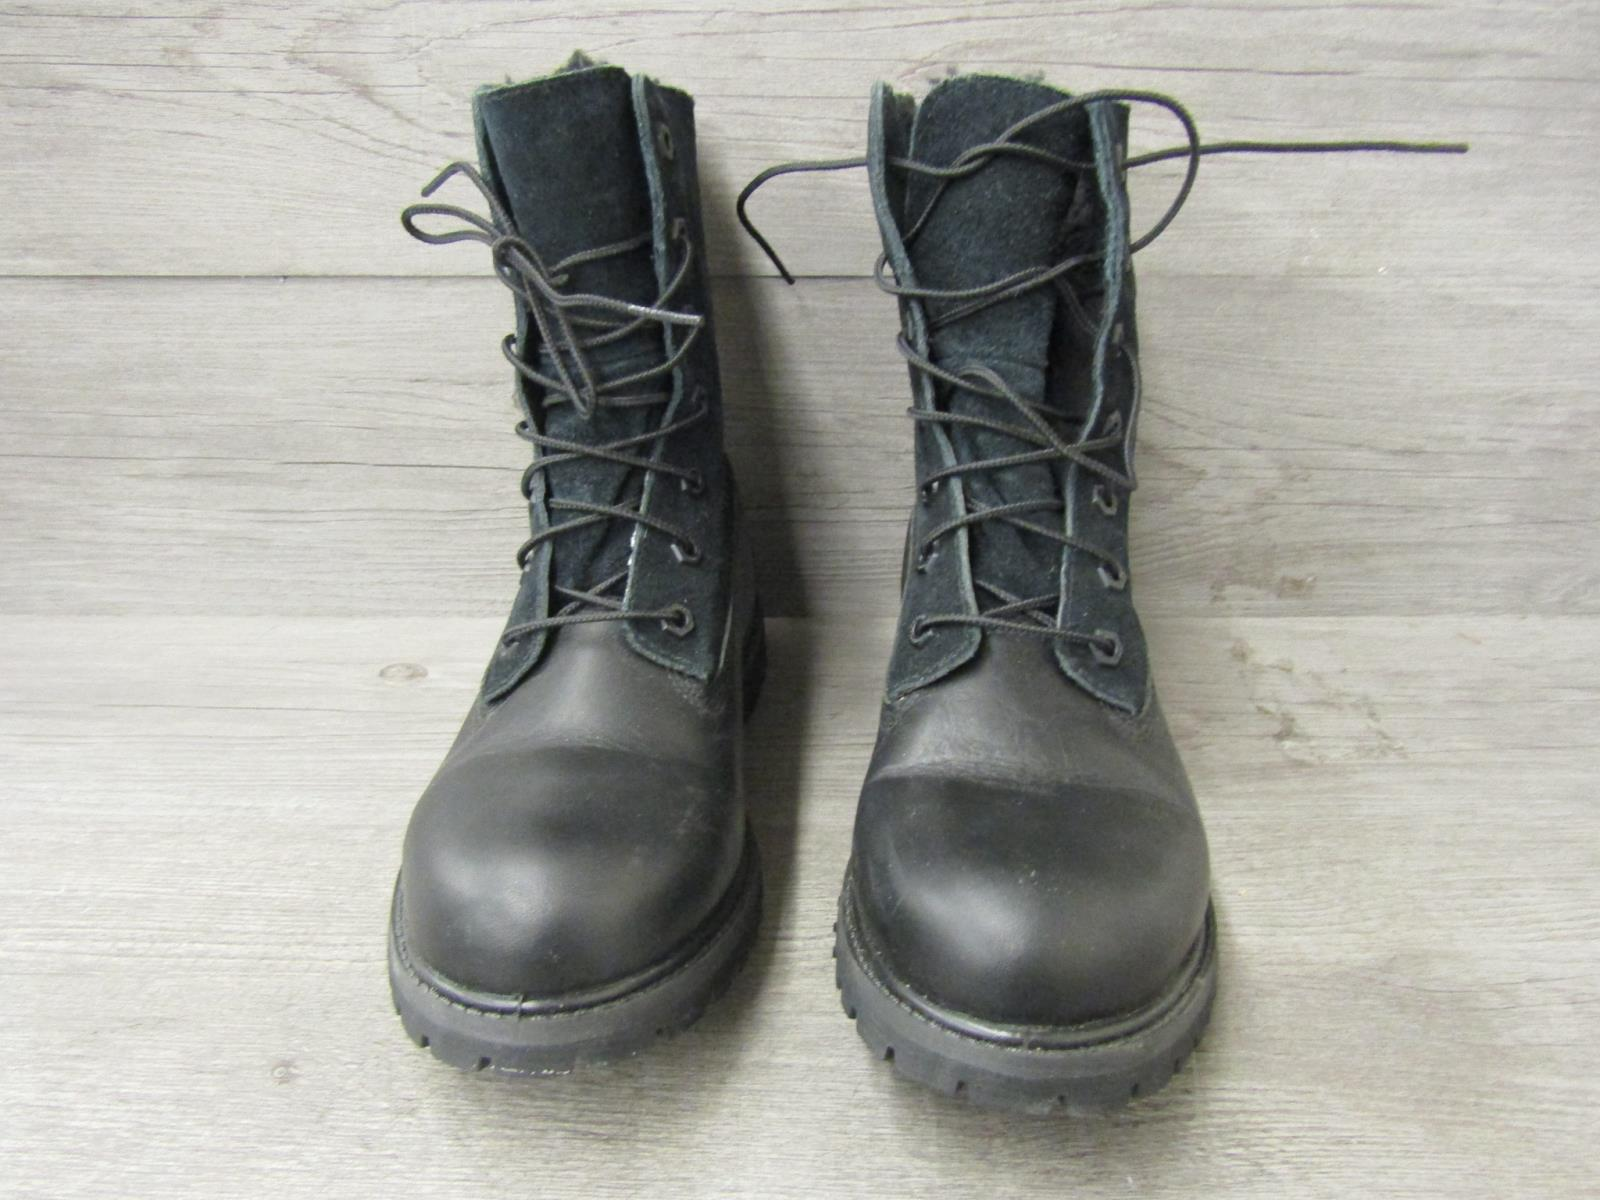 6383690713b Details about Pair of Timberland Earthkeepers Black Women's Waterproof  Boots Size 8.5M